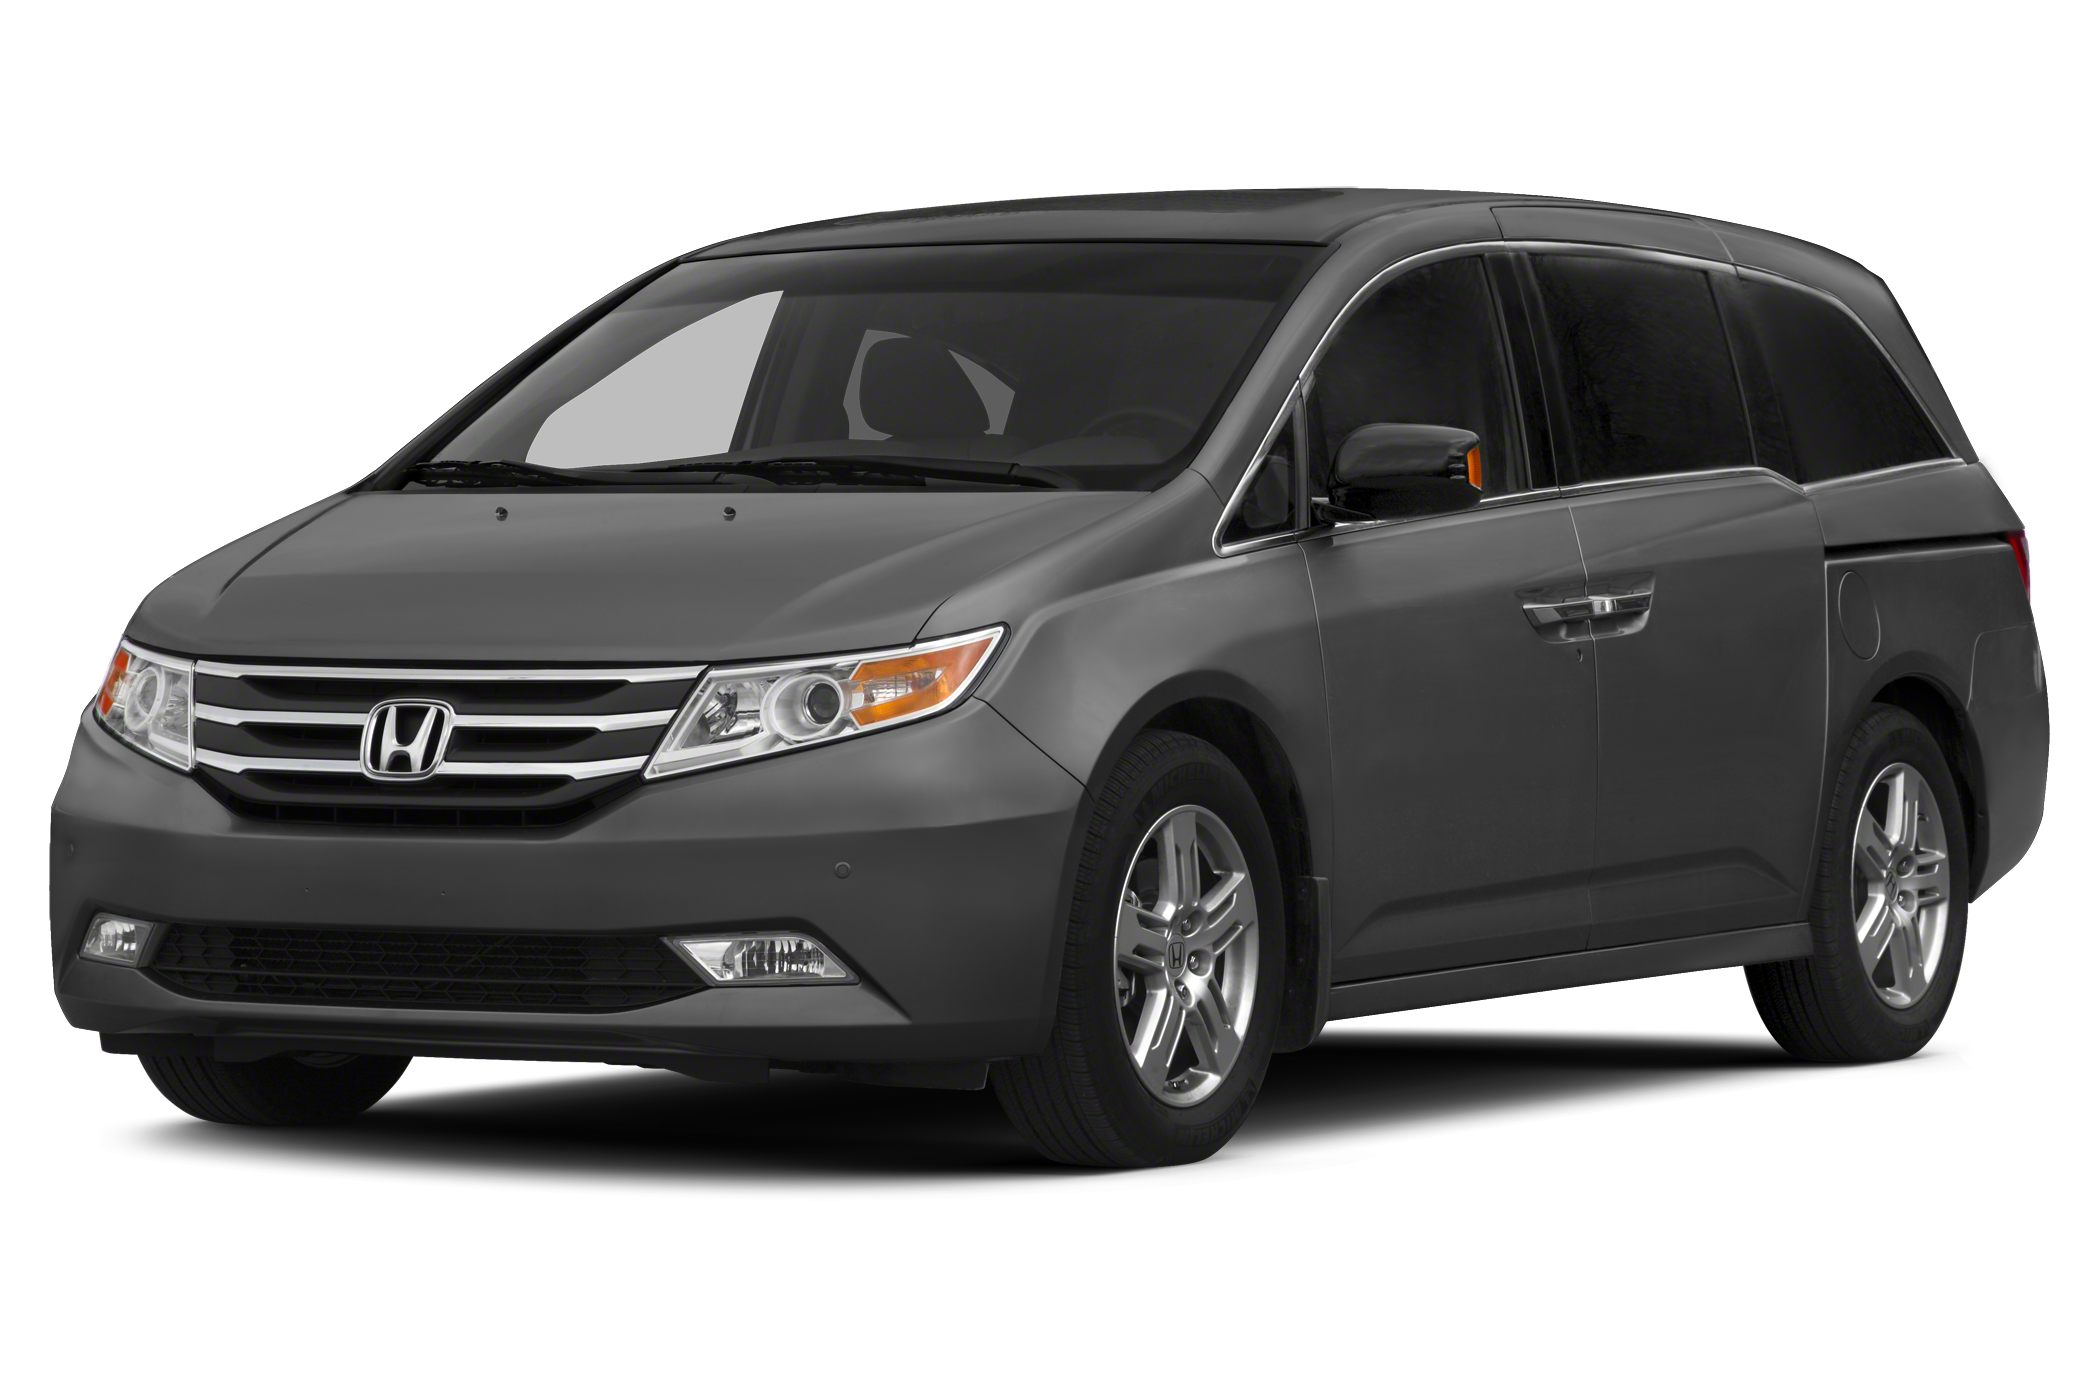 2013 Honda Odyssey EX-L Value Value 3 Year 100k miles limited Power Train Warranty with road side